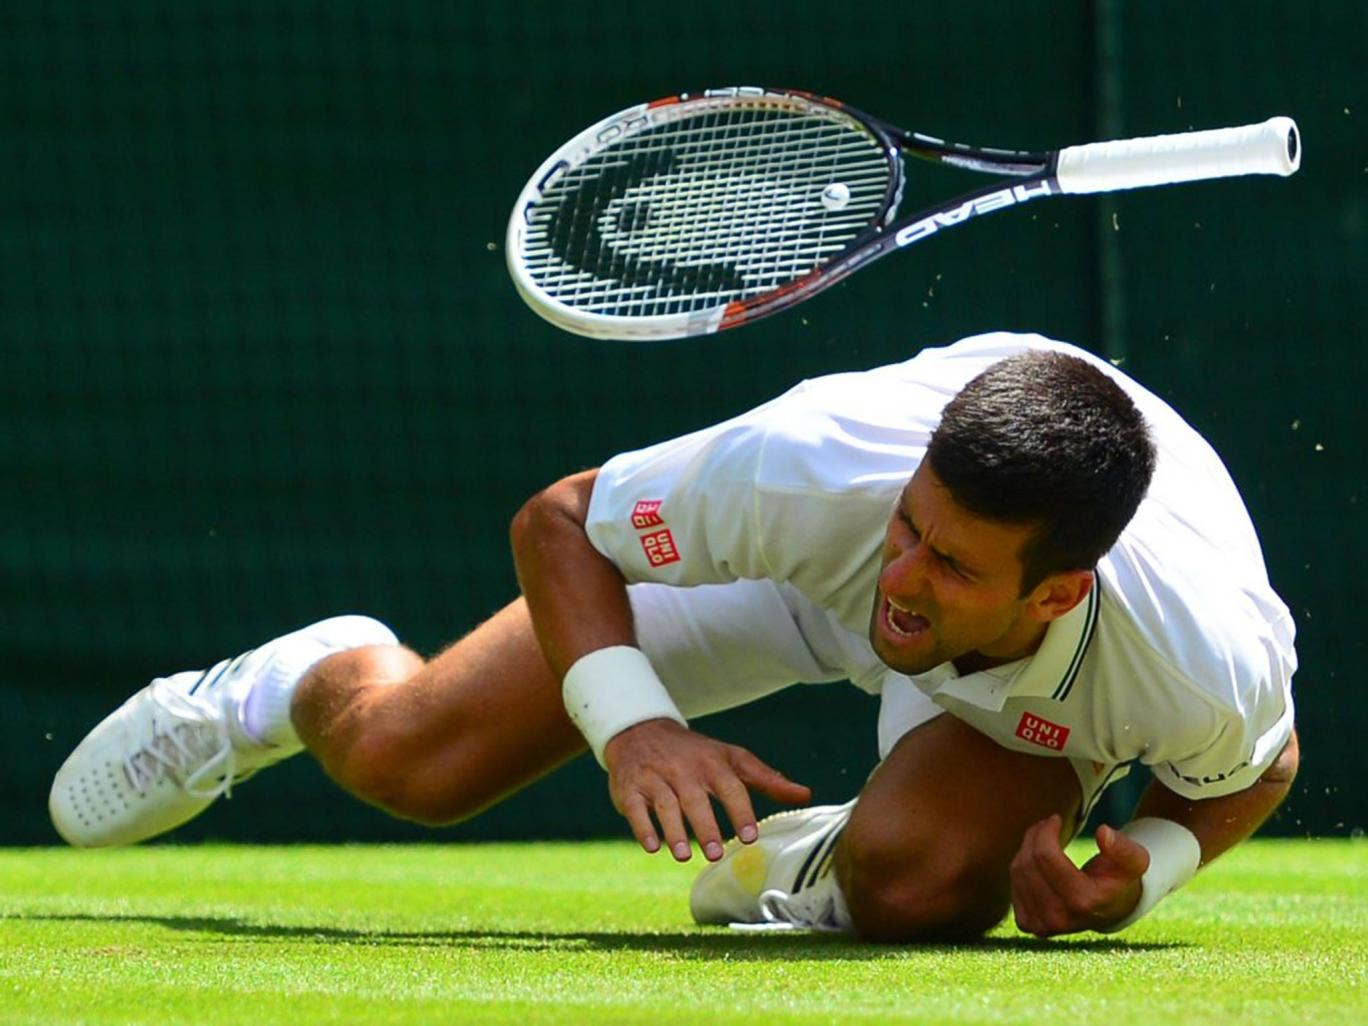 Novak Djokovic in pain after falling badly trying the sort of diving volley trademarked by his coach Boris Becker